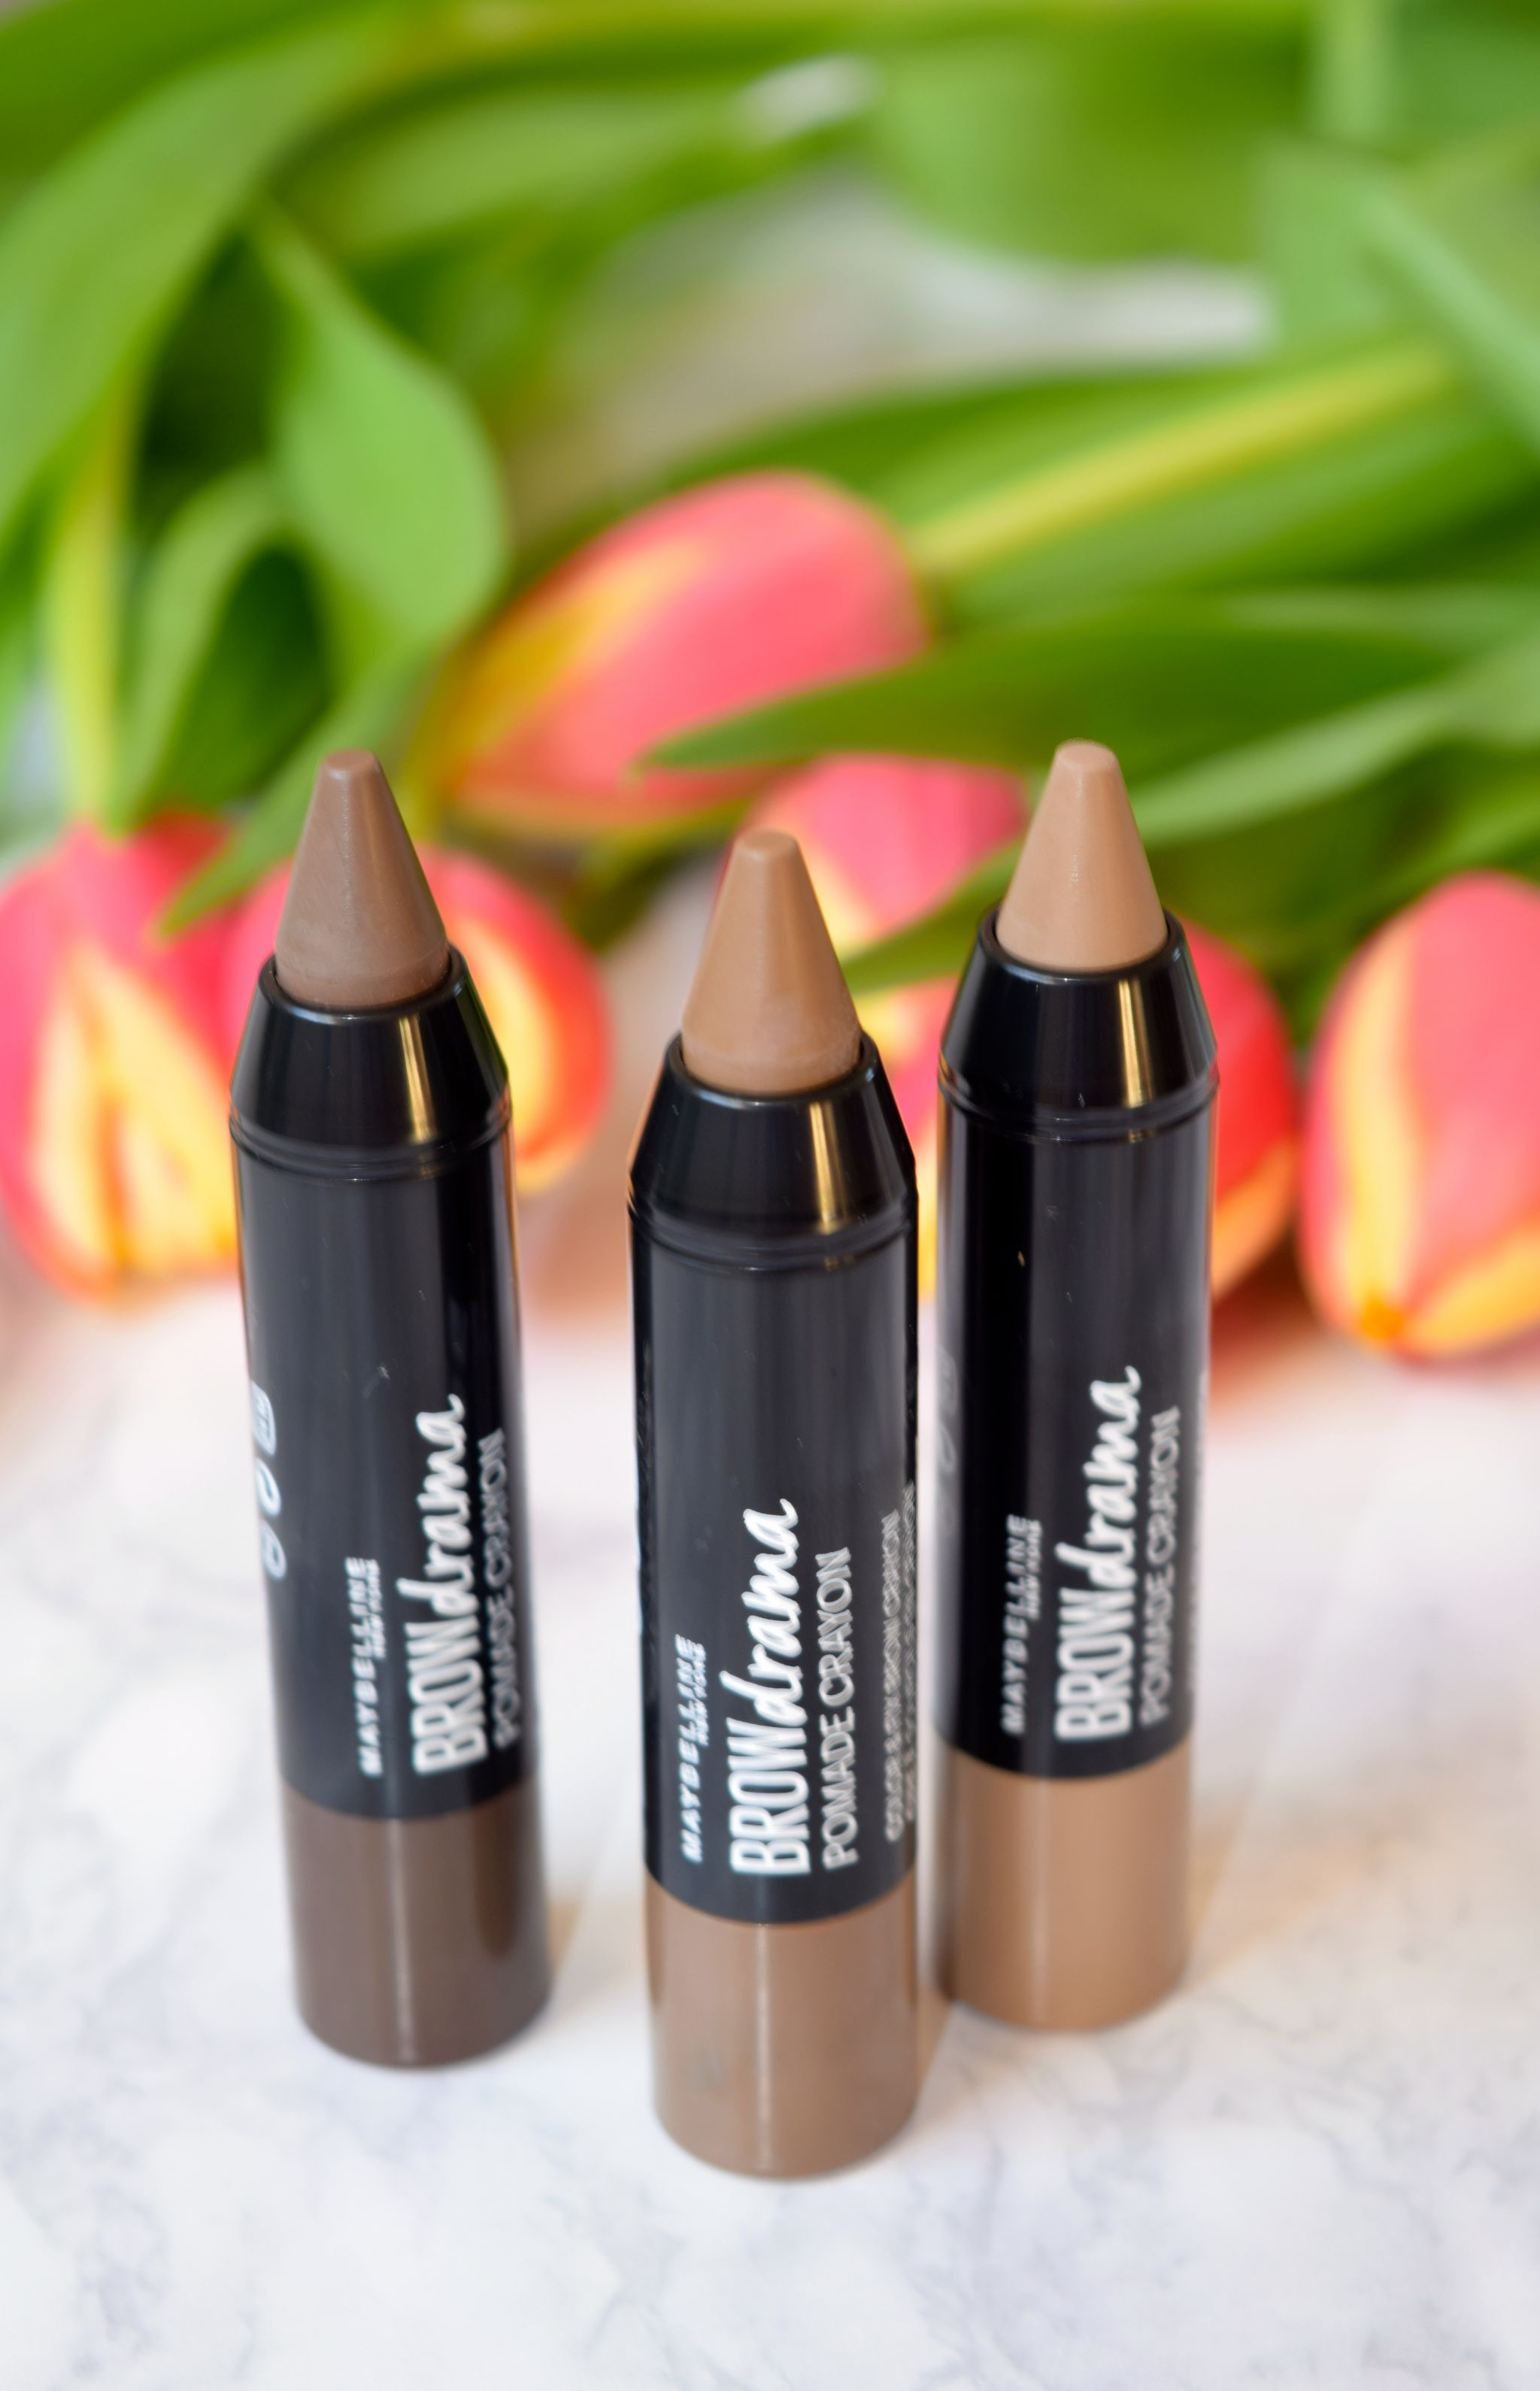 Maybelline Brow Drama Pomade Crayon 1